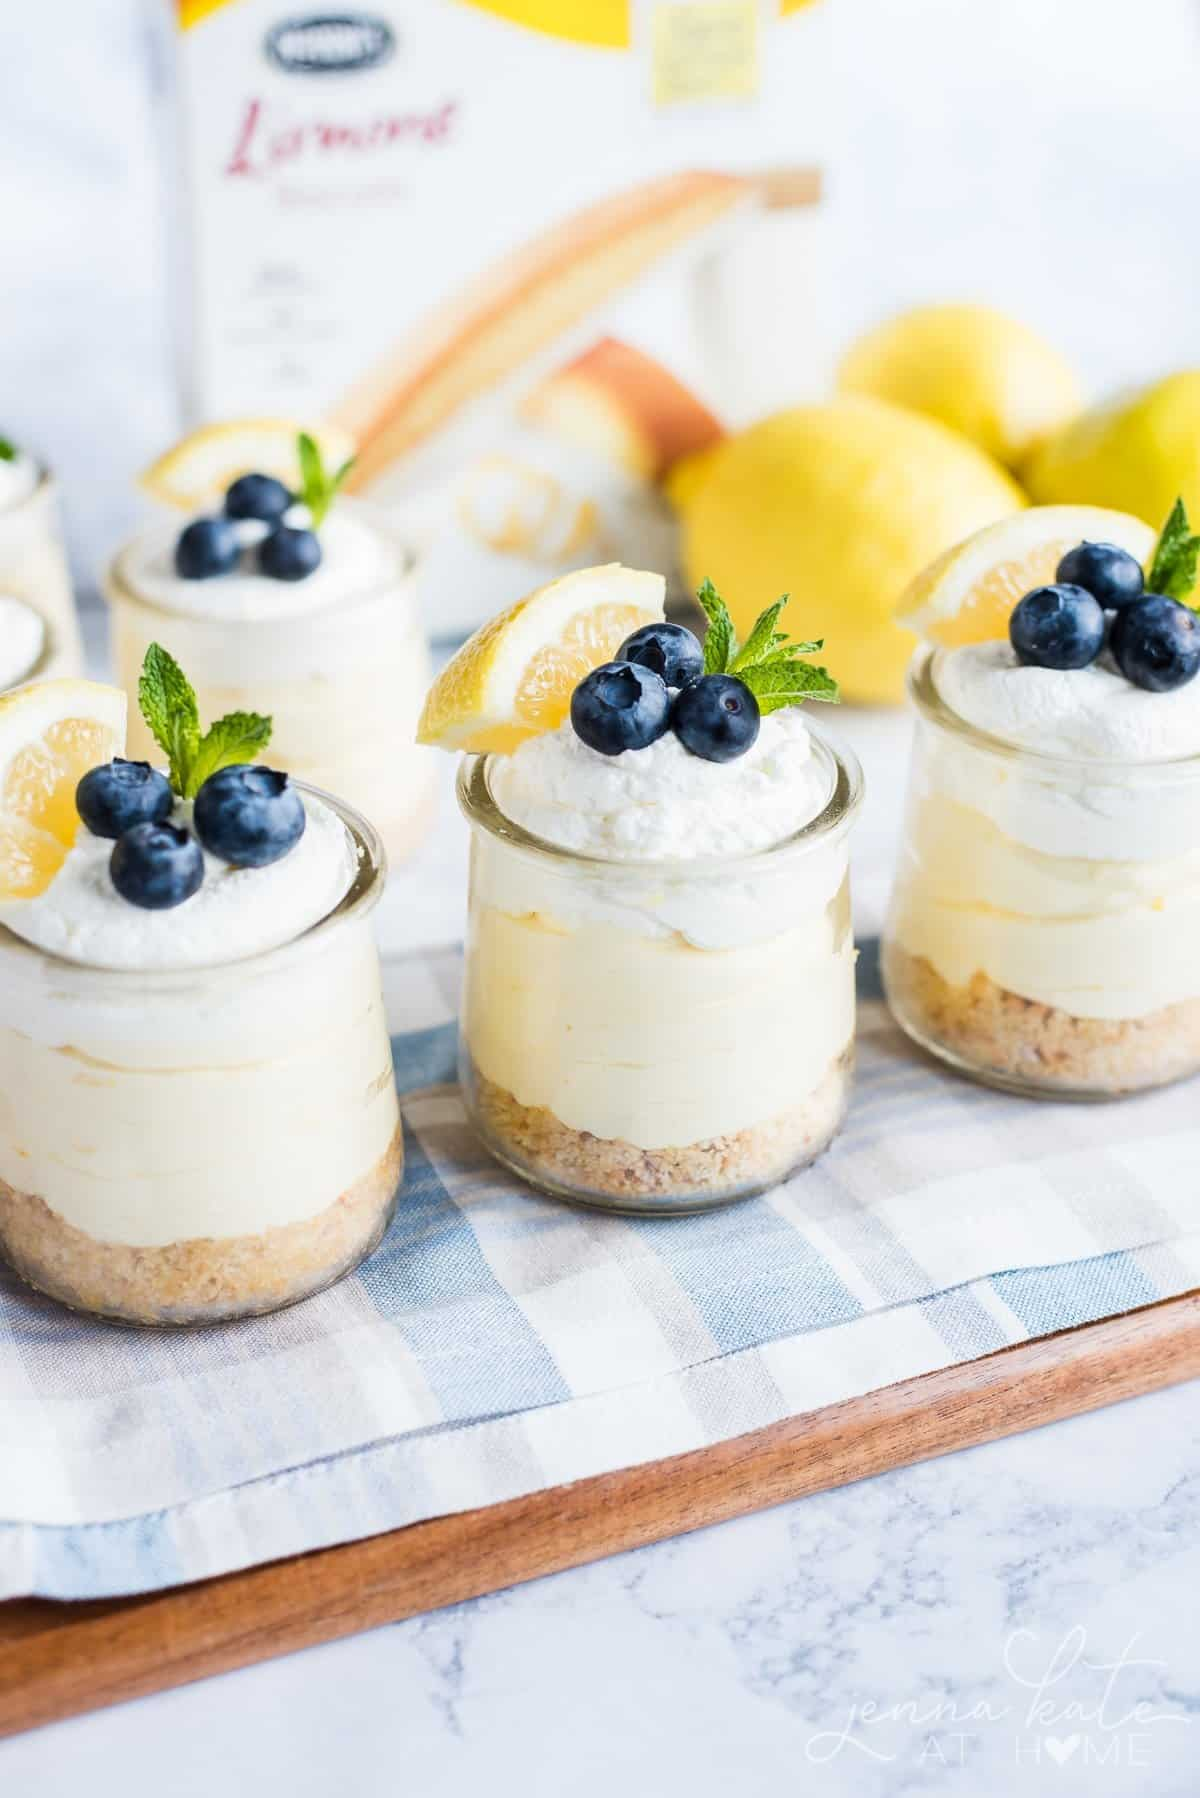 Lemon Mousse Cheesecakes made with real lemon curd